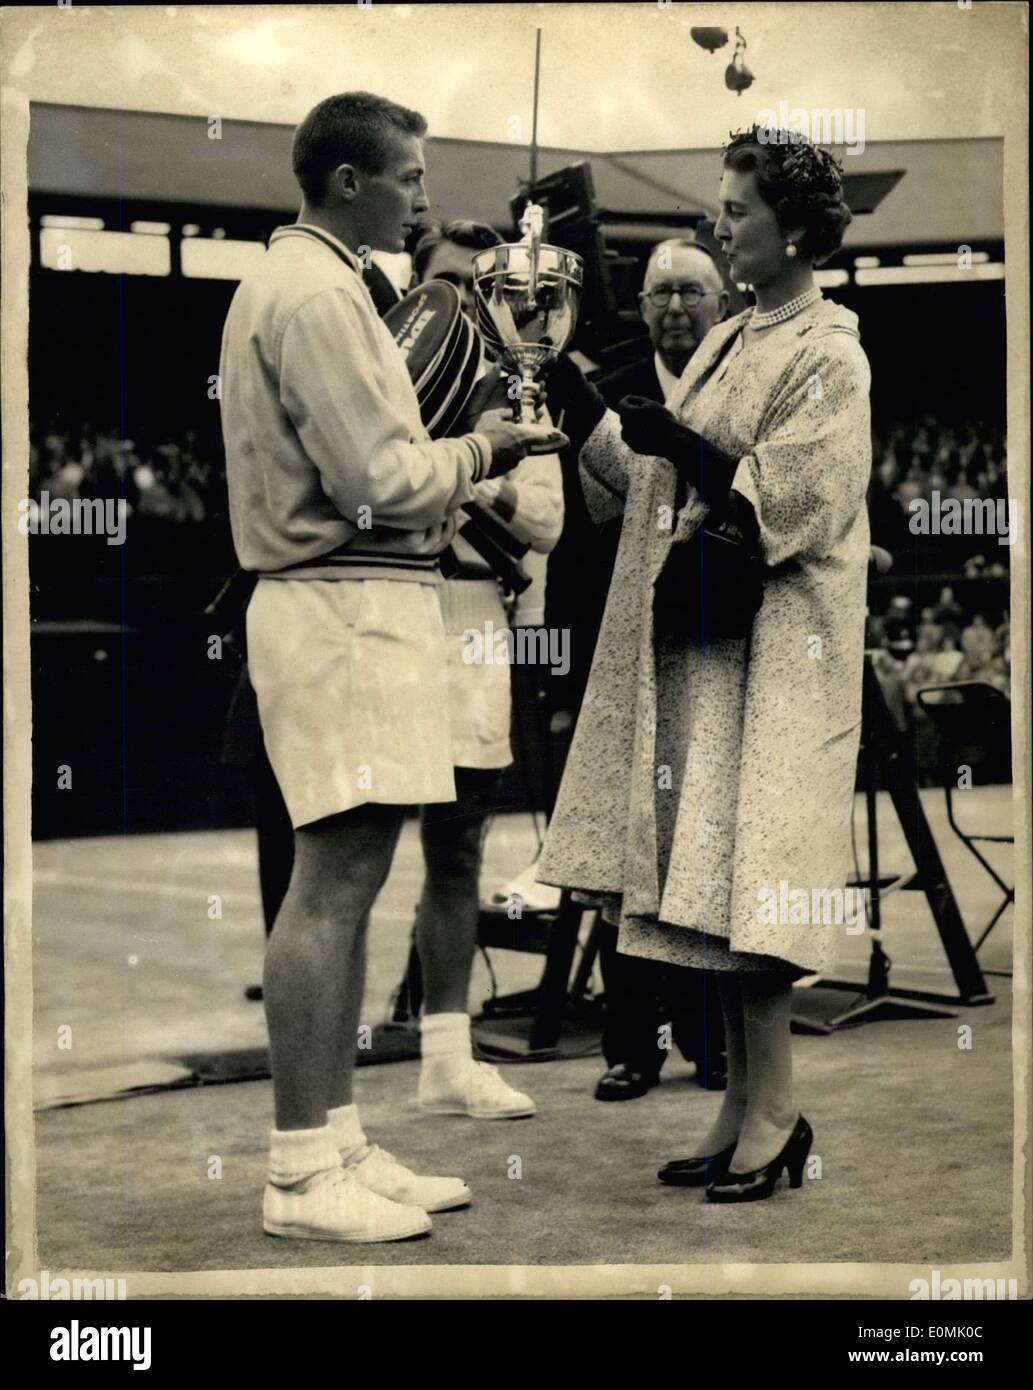 Jul 01 1955 Tony Trabert wins singles title Duchess of Kent